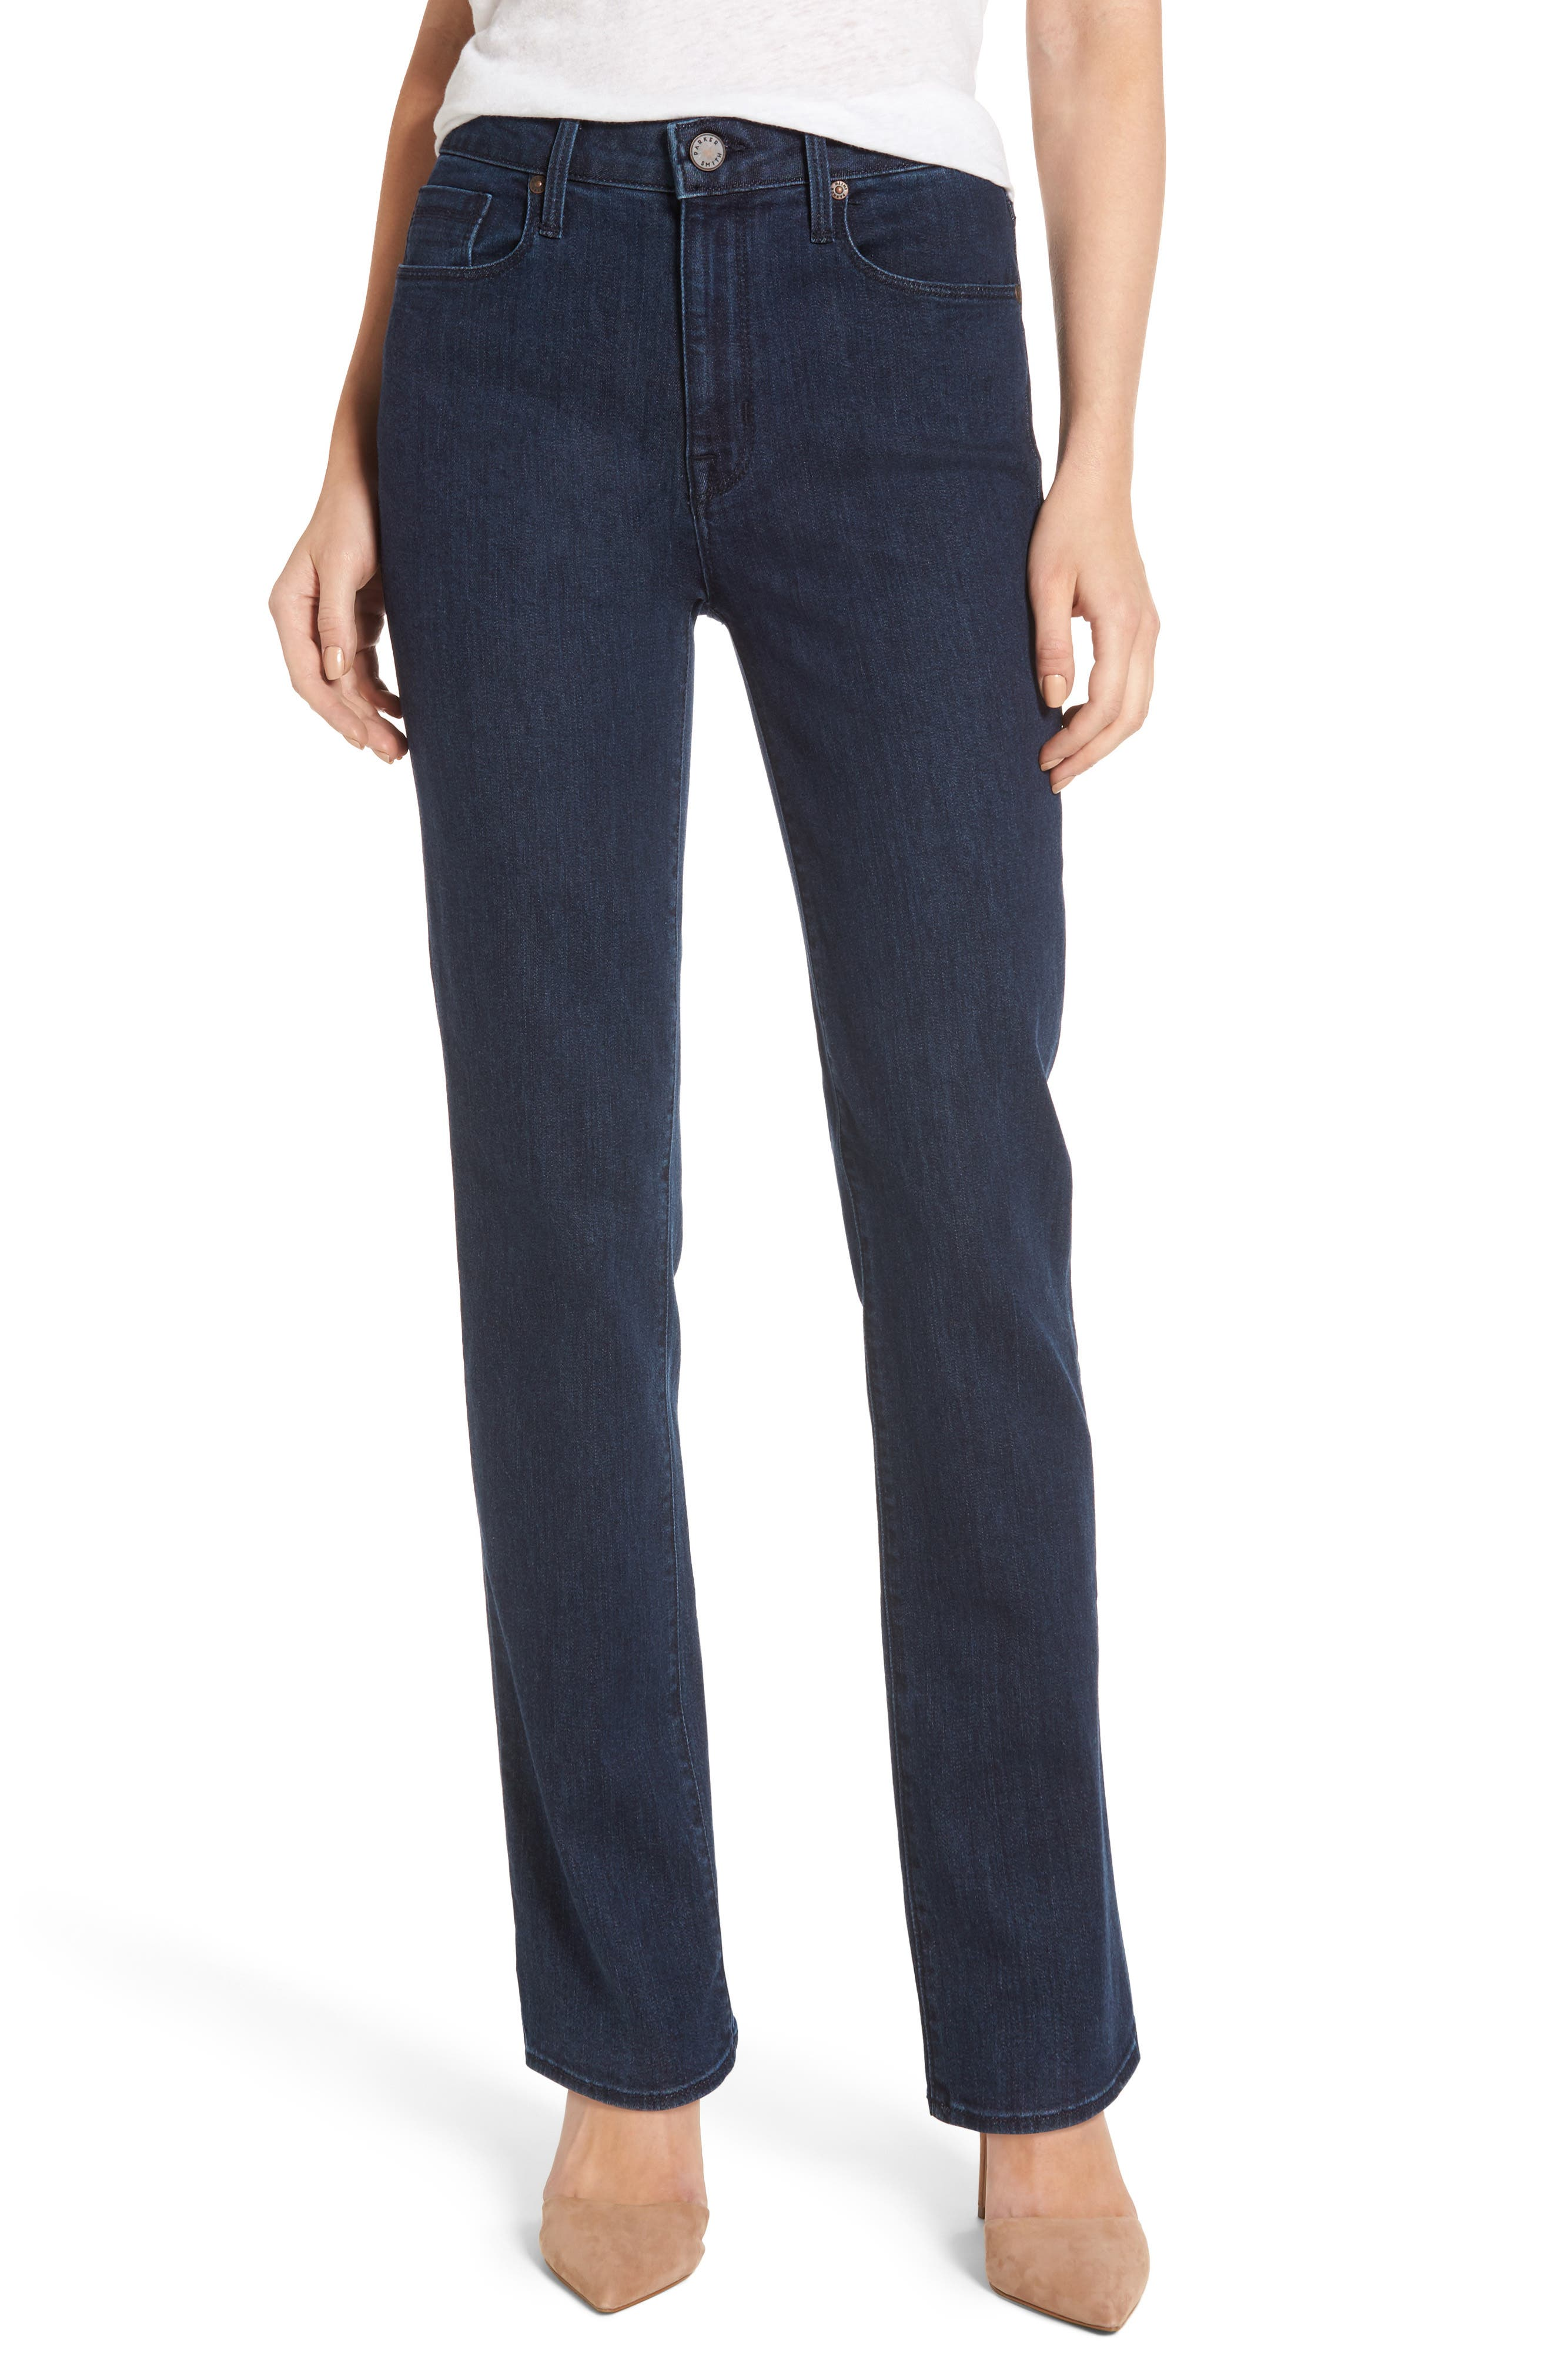 Main Image - PARKER SMITH Bombshell Runaround Straight Leg Jeans (Baltic)